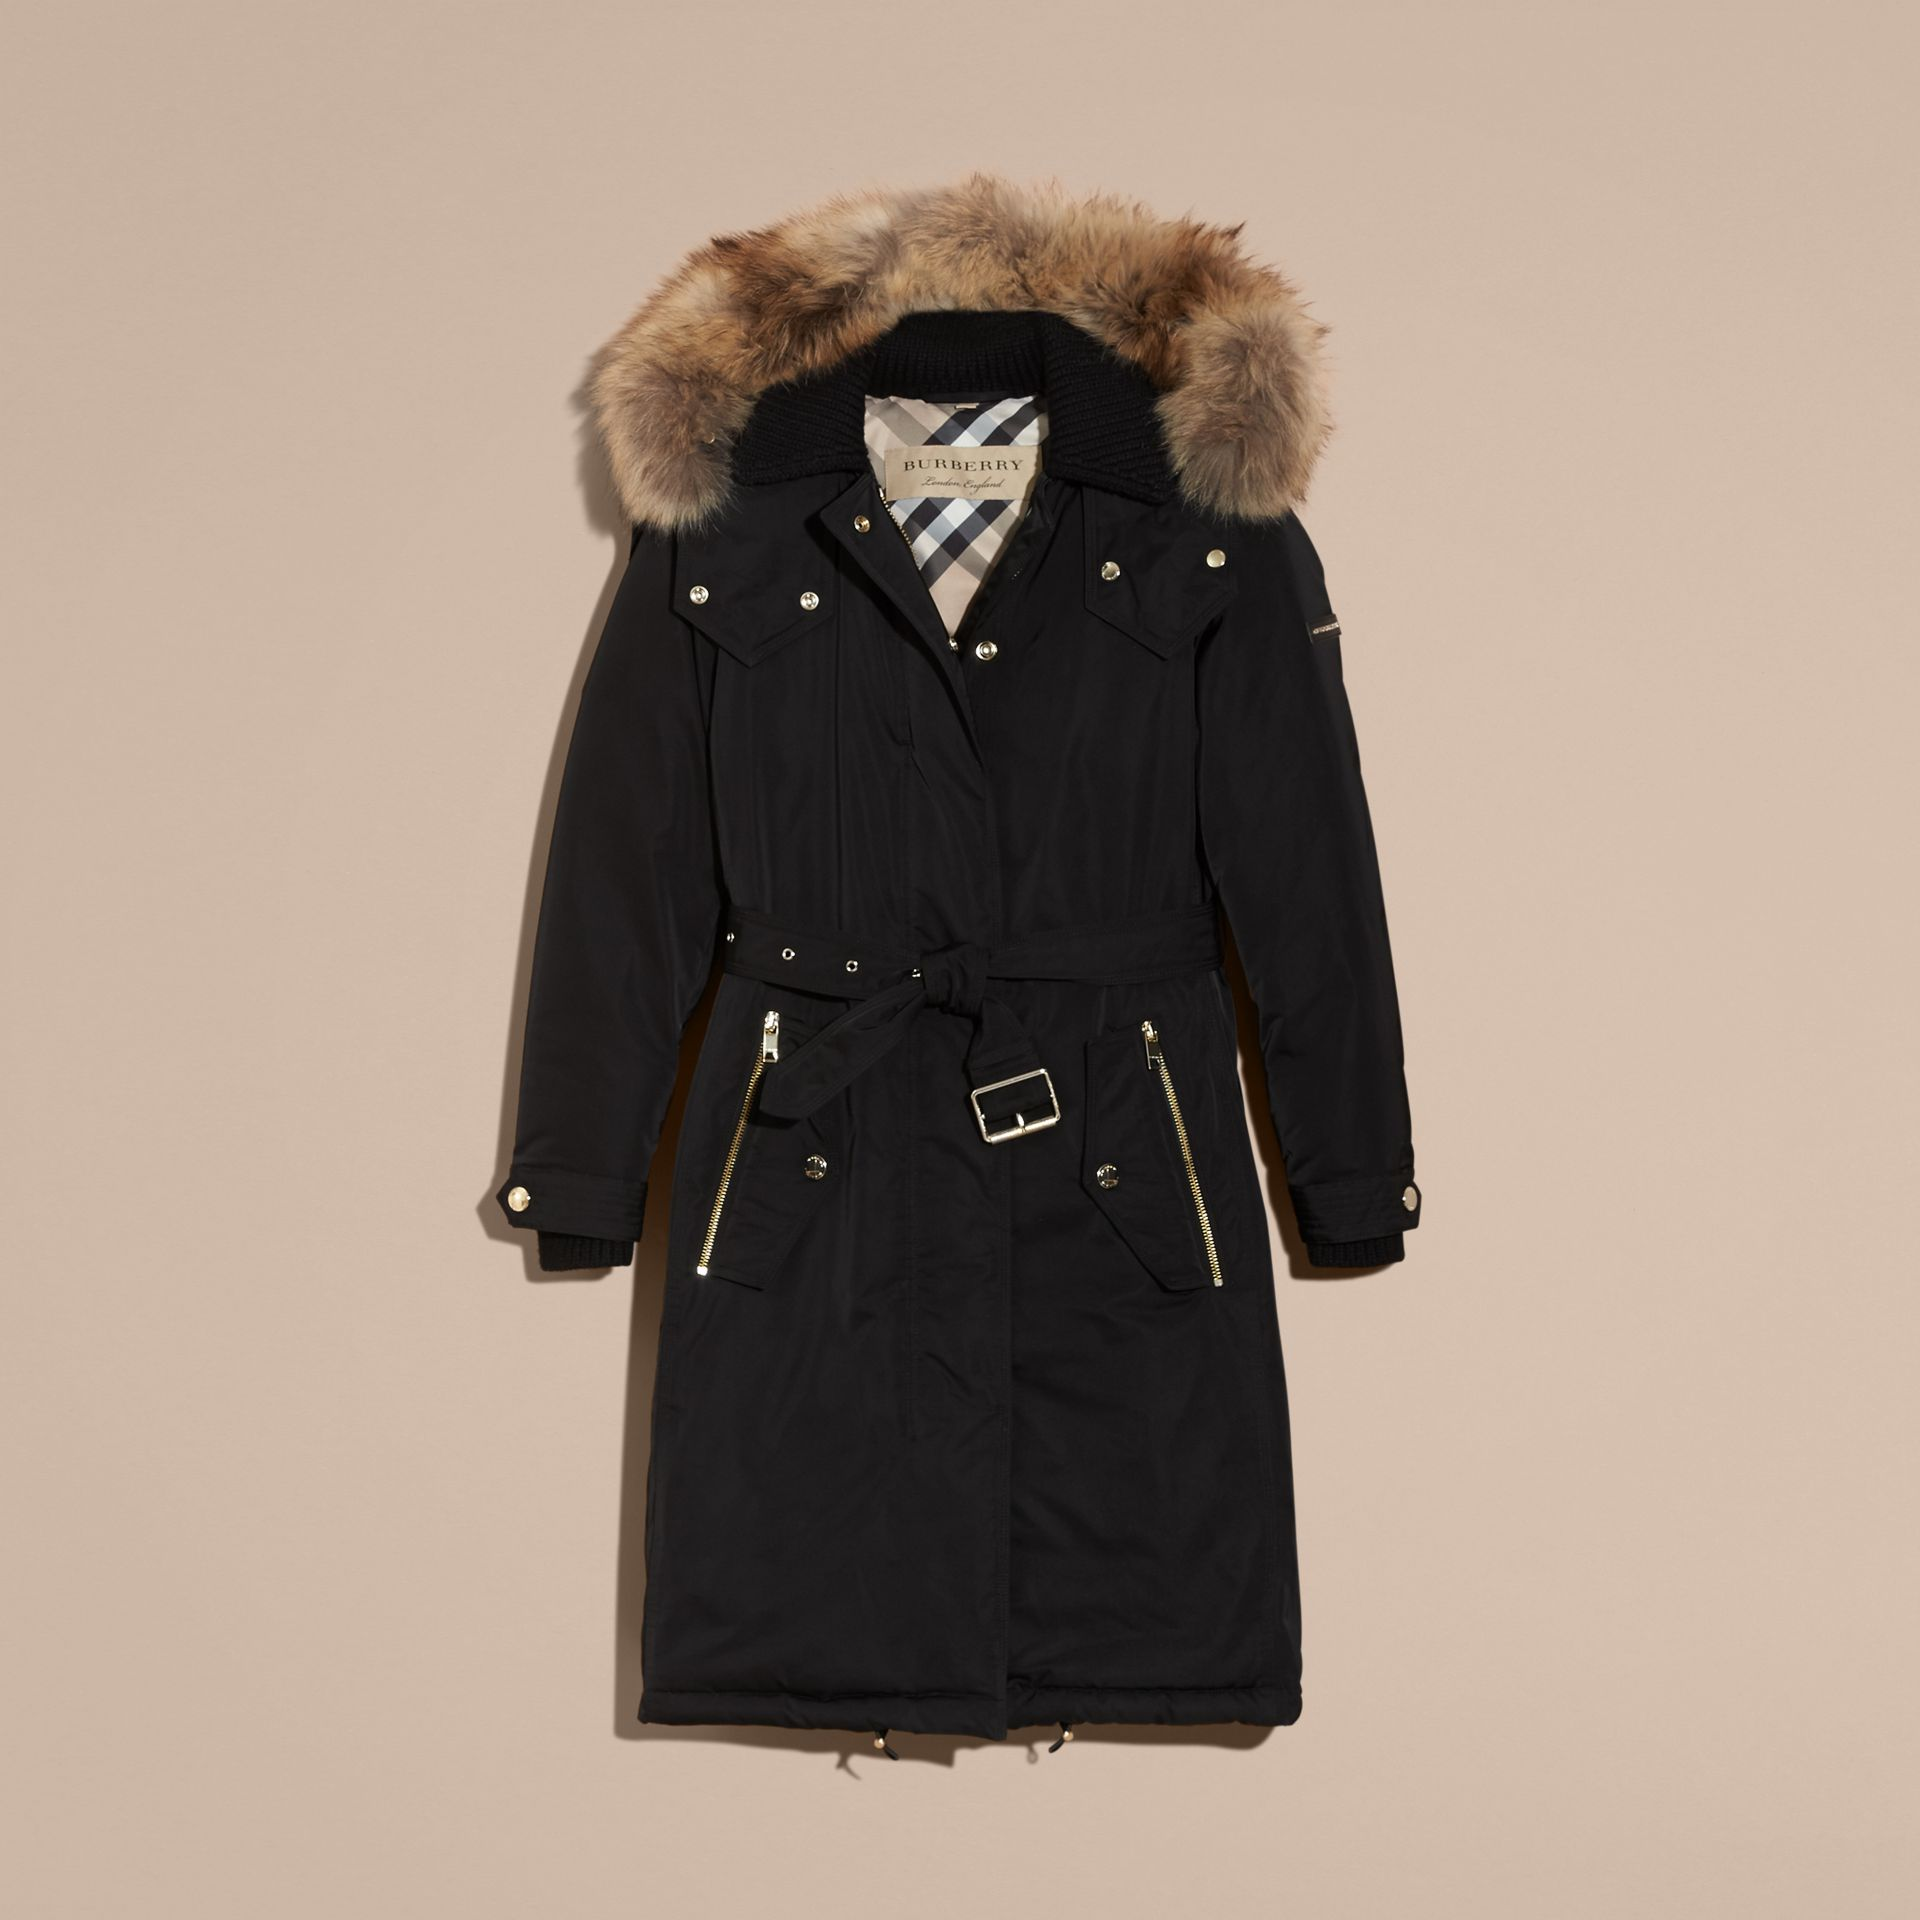 Black Down-filled Parka Coat with Detachable Fur Trim Black - gallery image 4